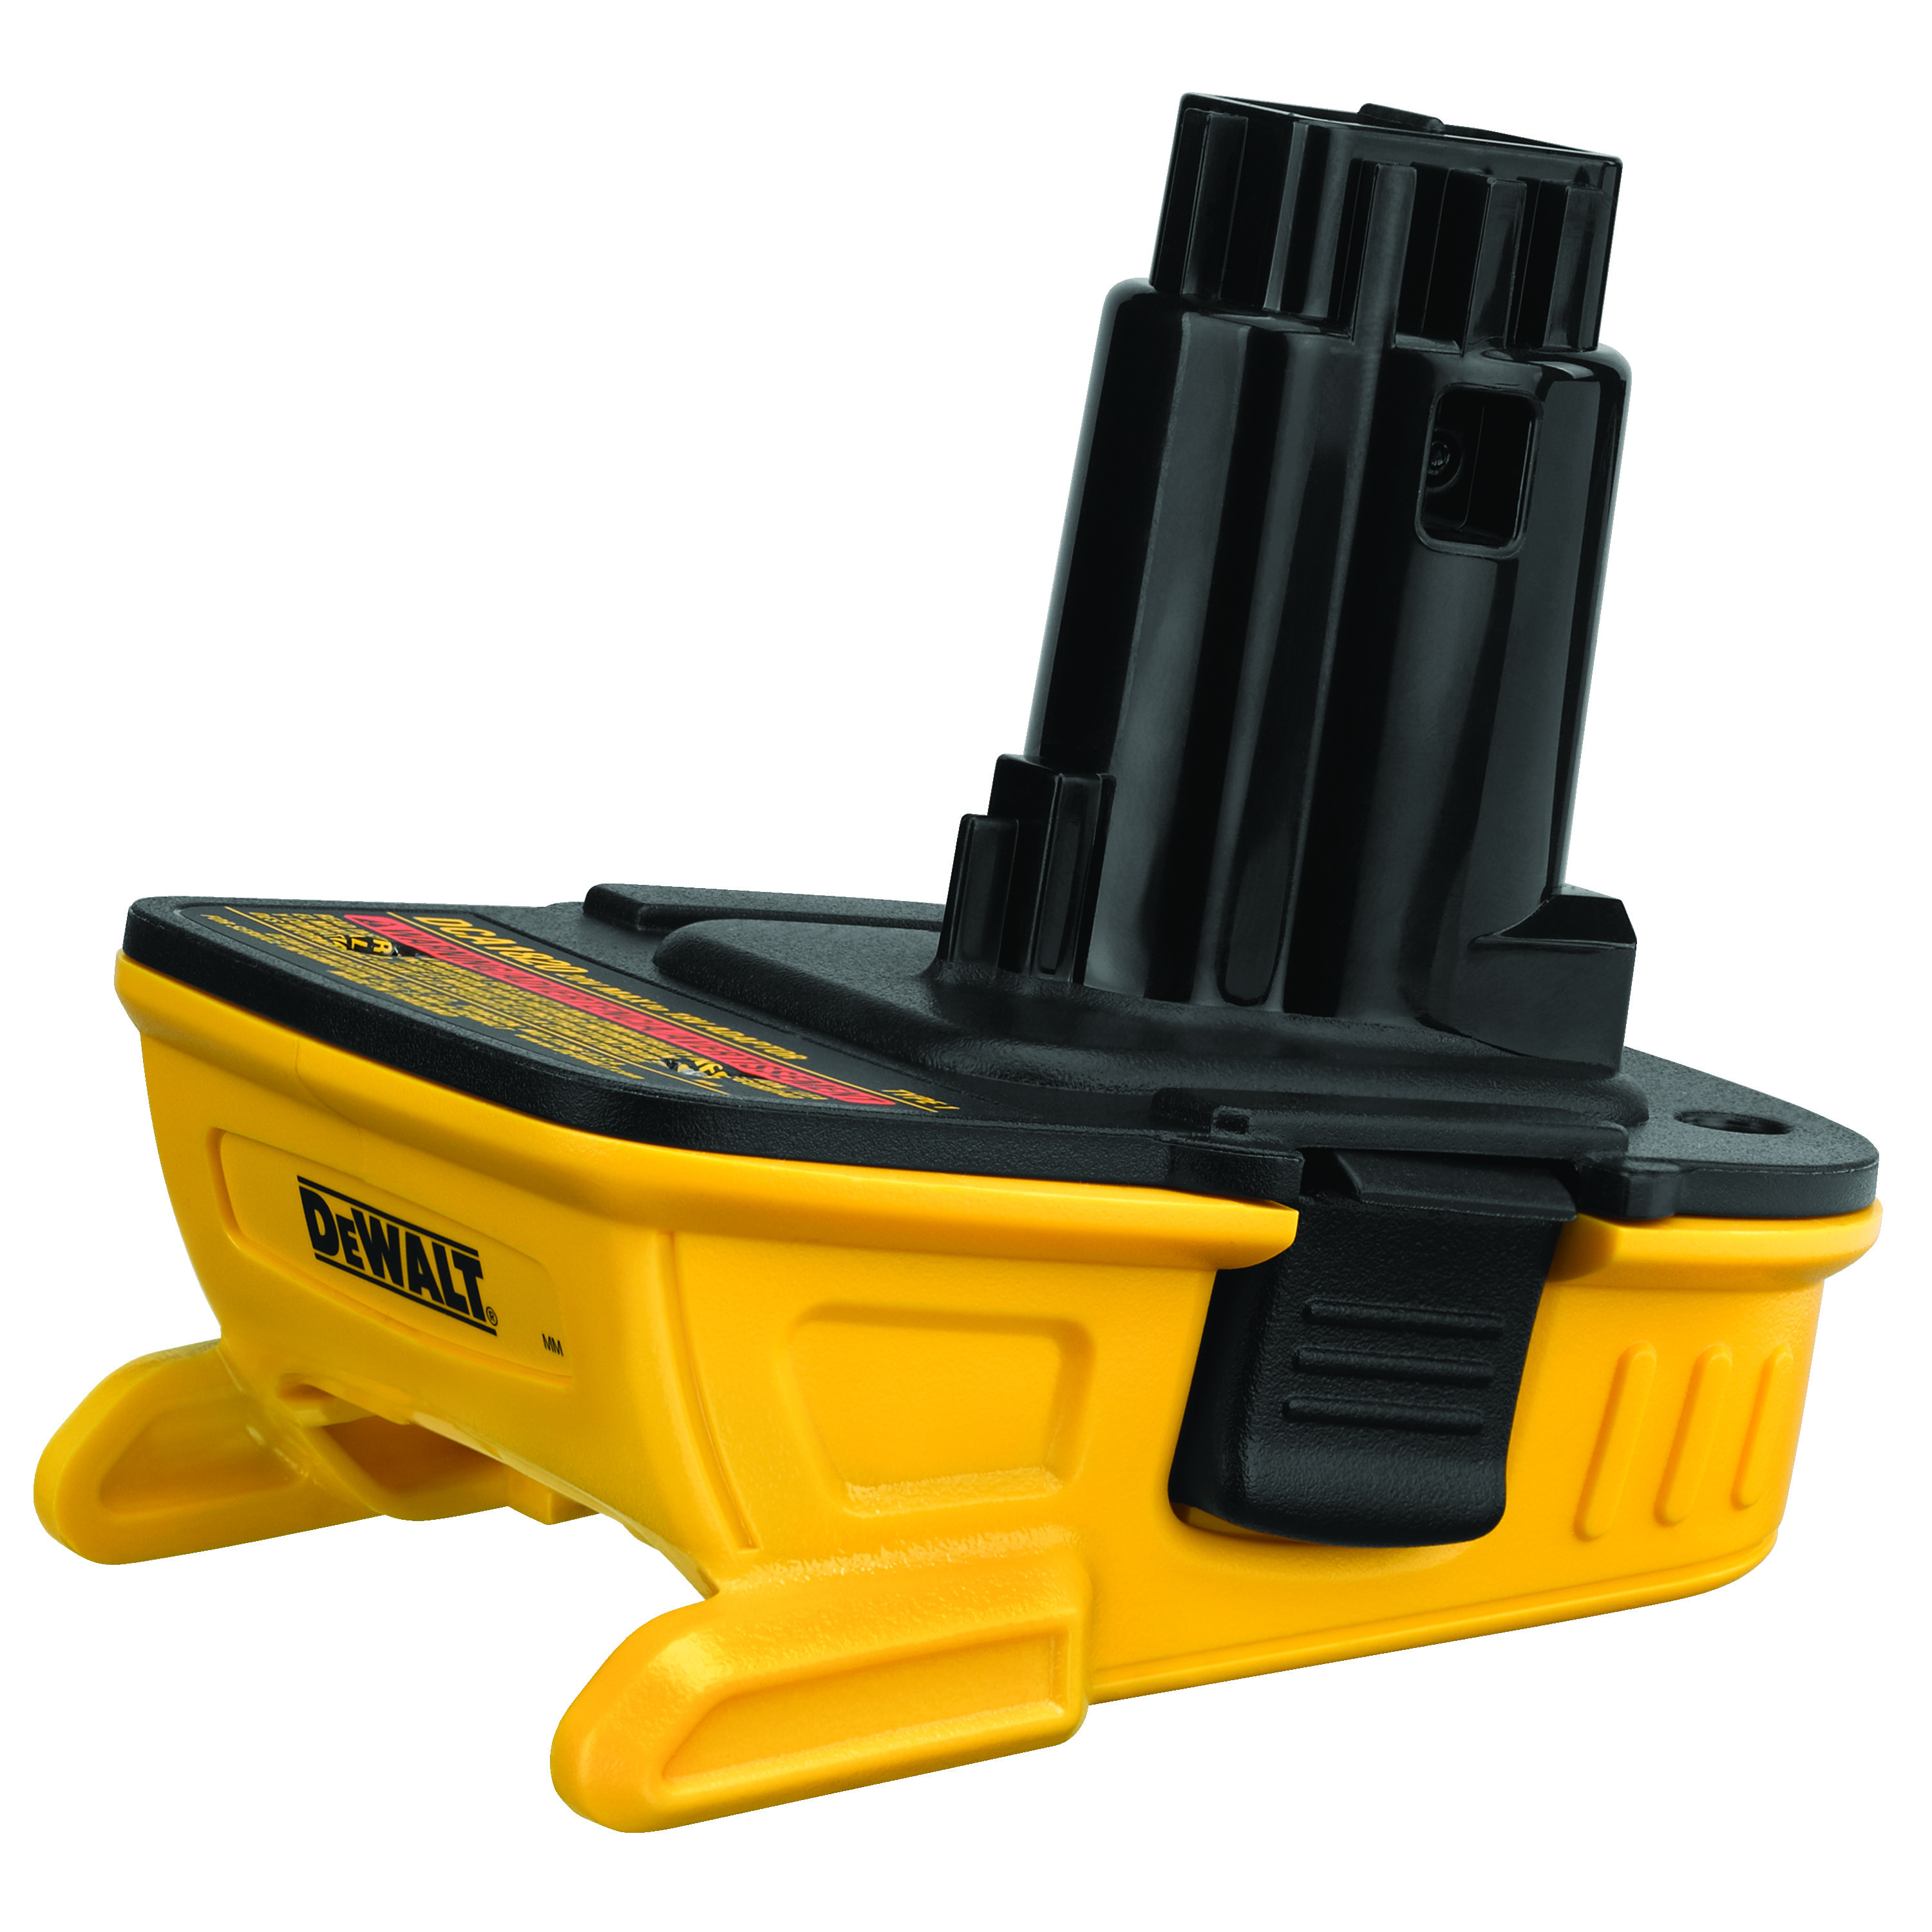 DeWALT® 20V MAX* MATRIX™ DCA1820 Compact Slide Cordless Battery Adapter, Lithium-Ion Battery, 18 VDC Charge, For Use With DeWALT® DCB201, DCB203 and DCB203BT Compact Batteries